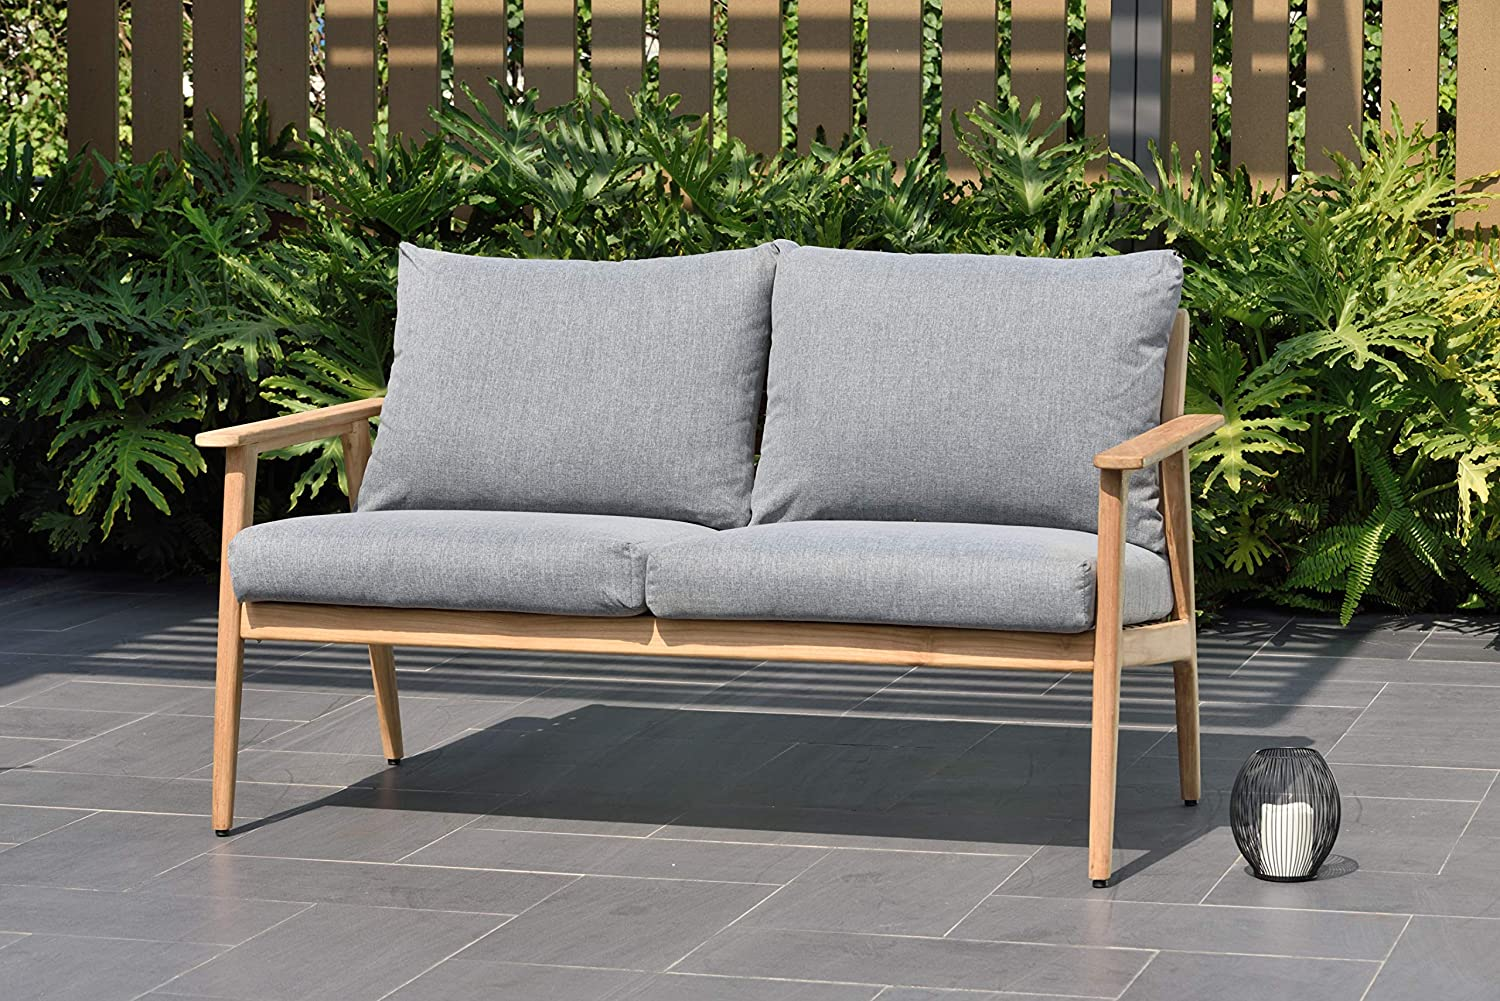 Amazon.com : Amazonia Bedford Patio Sofa | Durable Outdoor ...